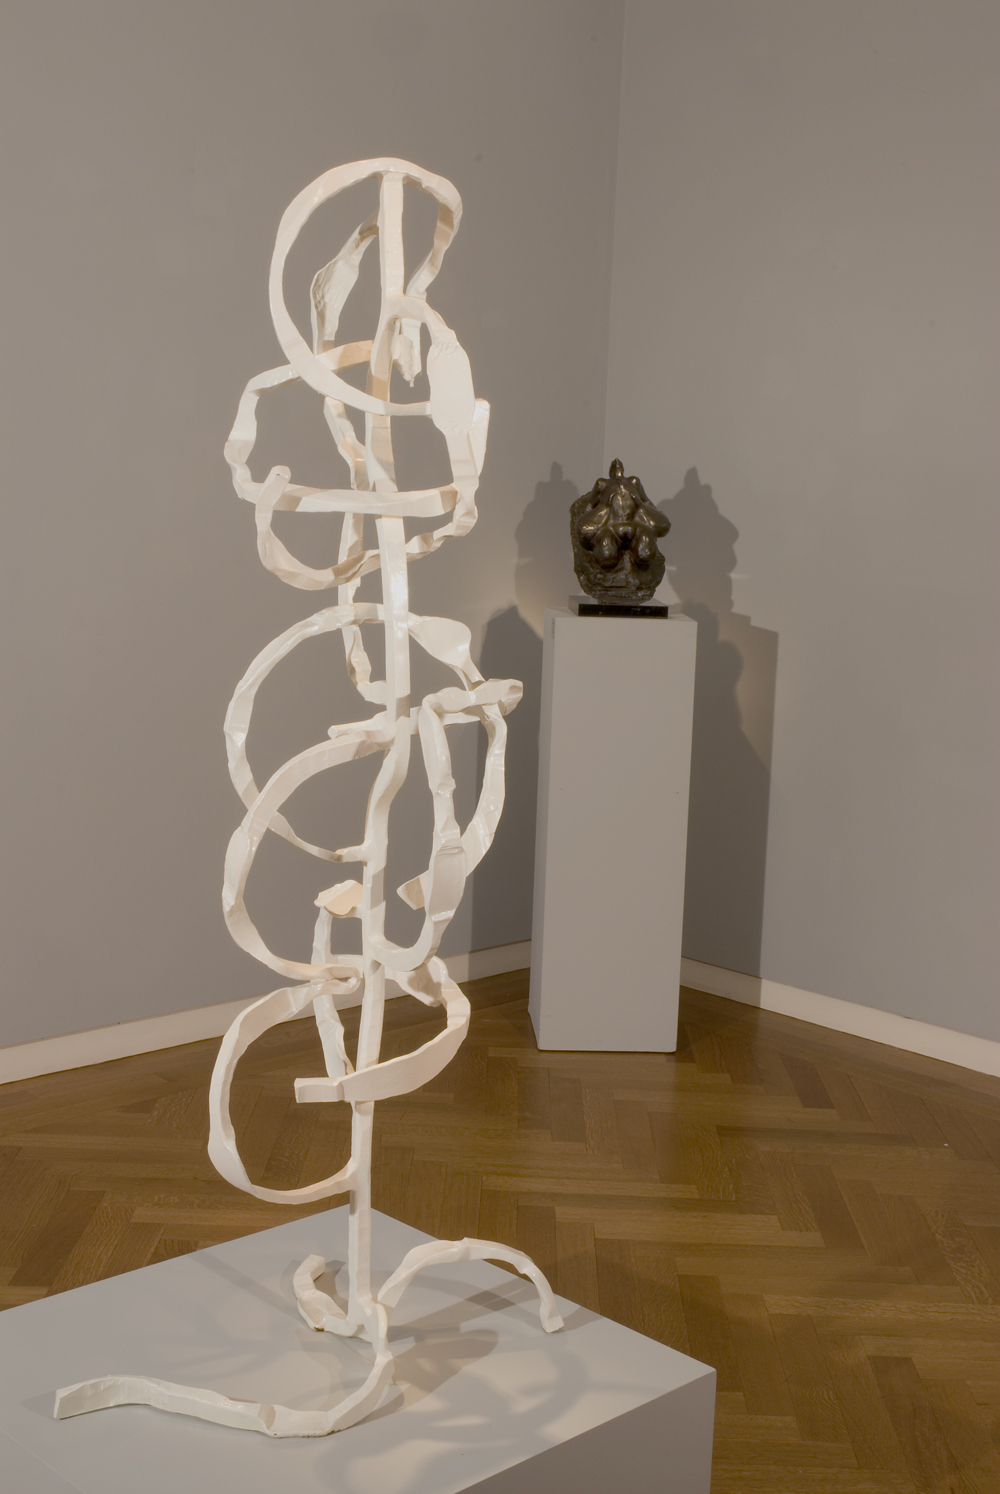 Salander O'Reilly Gallery, New York, Kirili and Lachaise, 2007